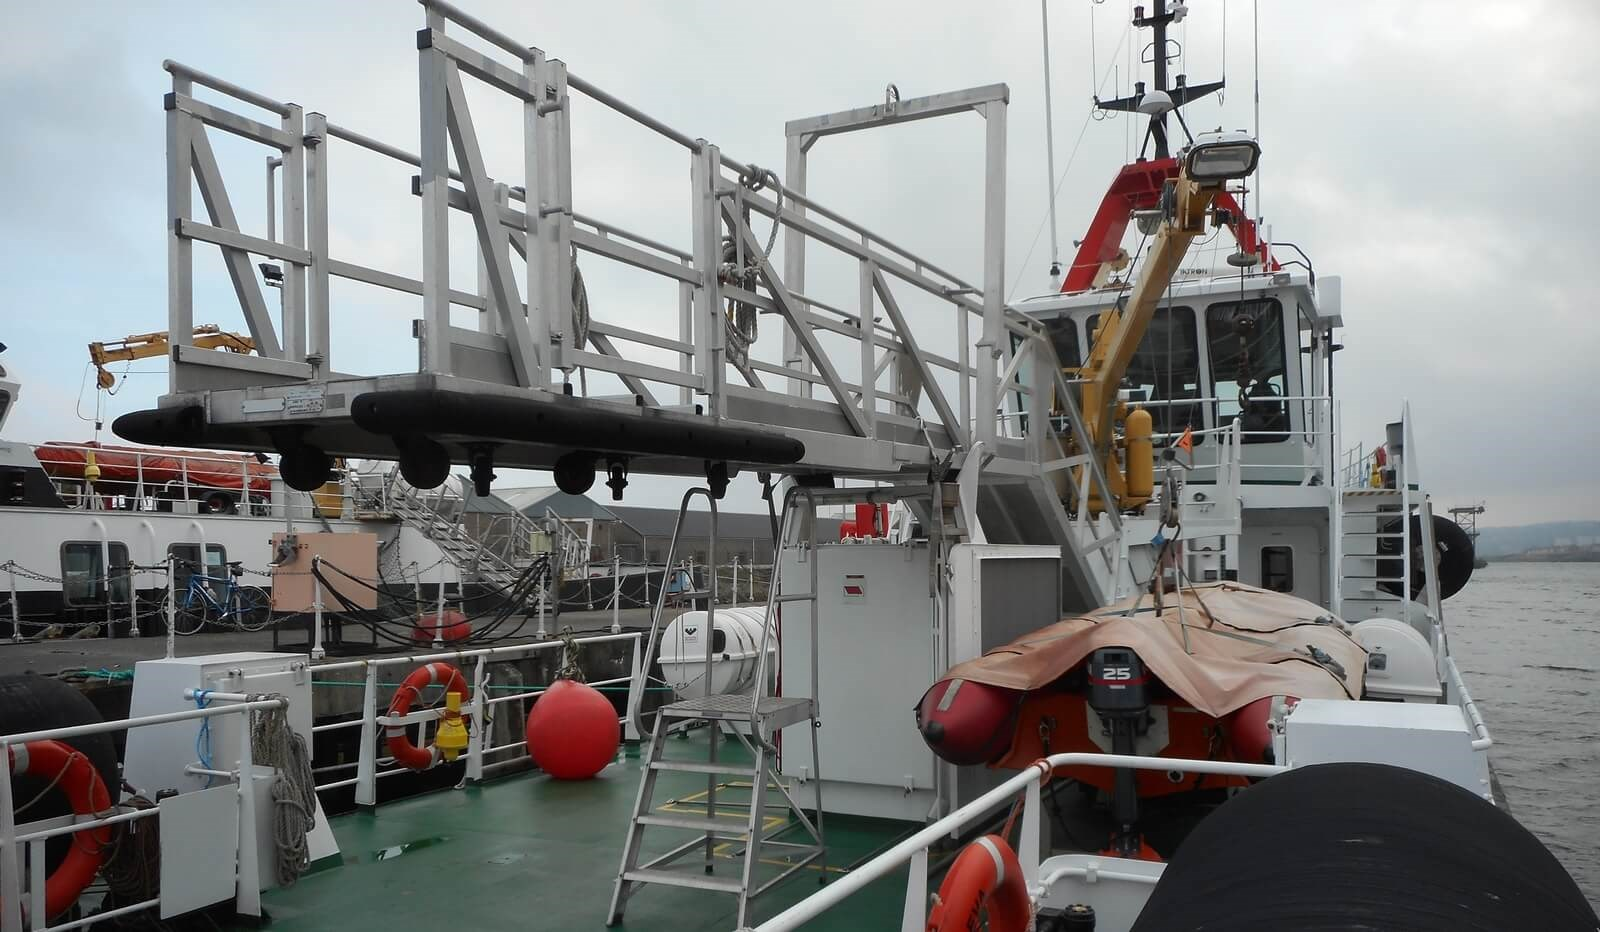 Brow on Aft Deck on used Damen Fast Crew Supplier